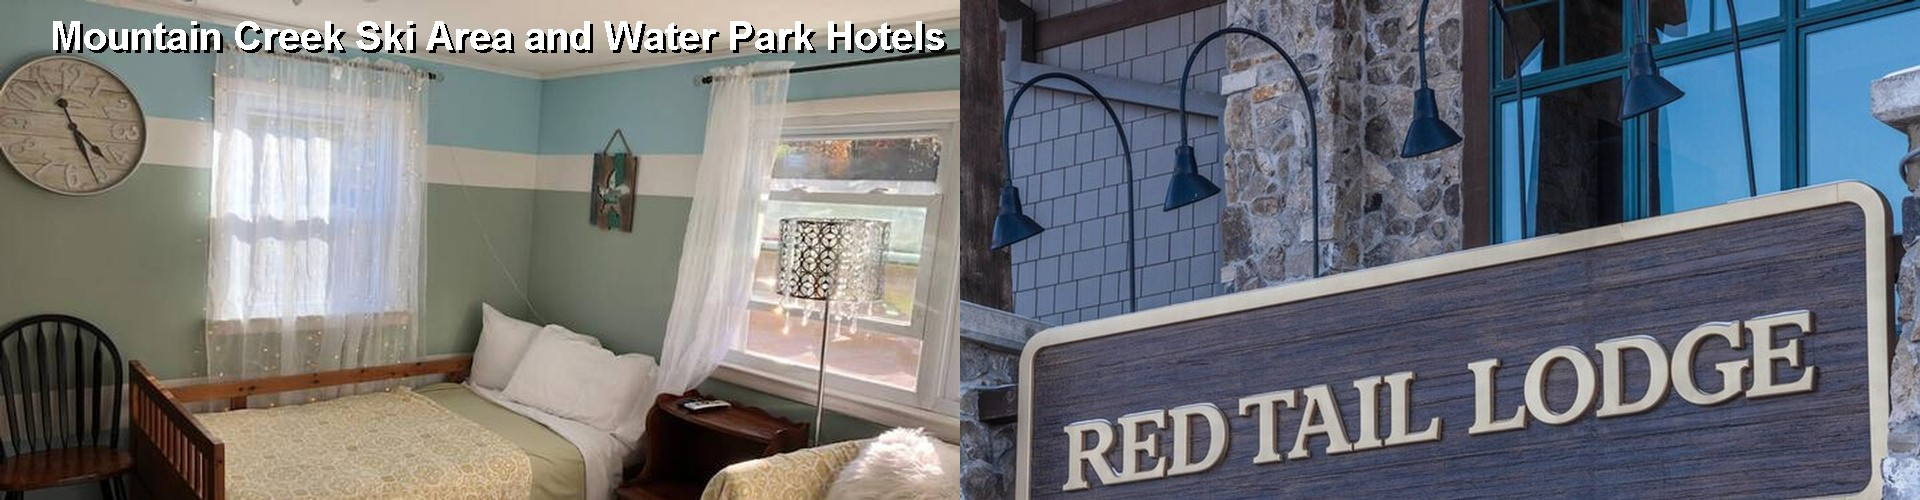 5 Best Hotels near Mountain Creek Ski Area and Water Park